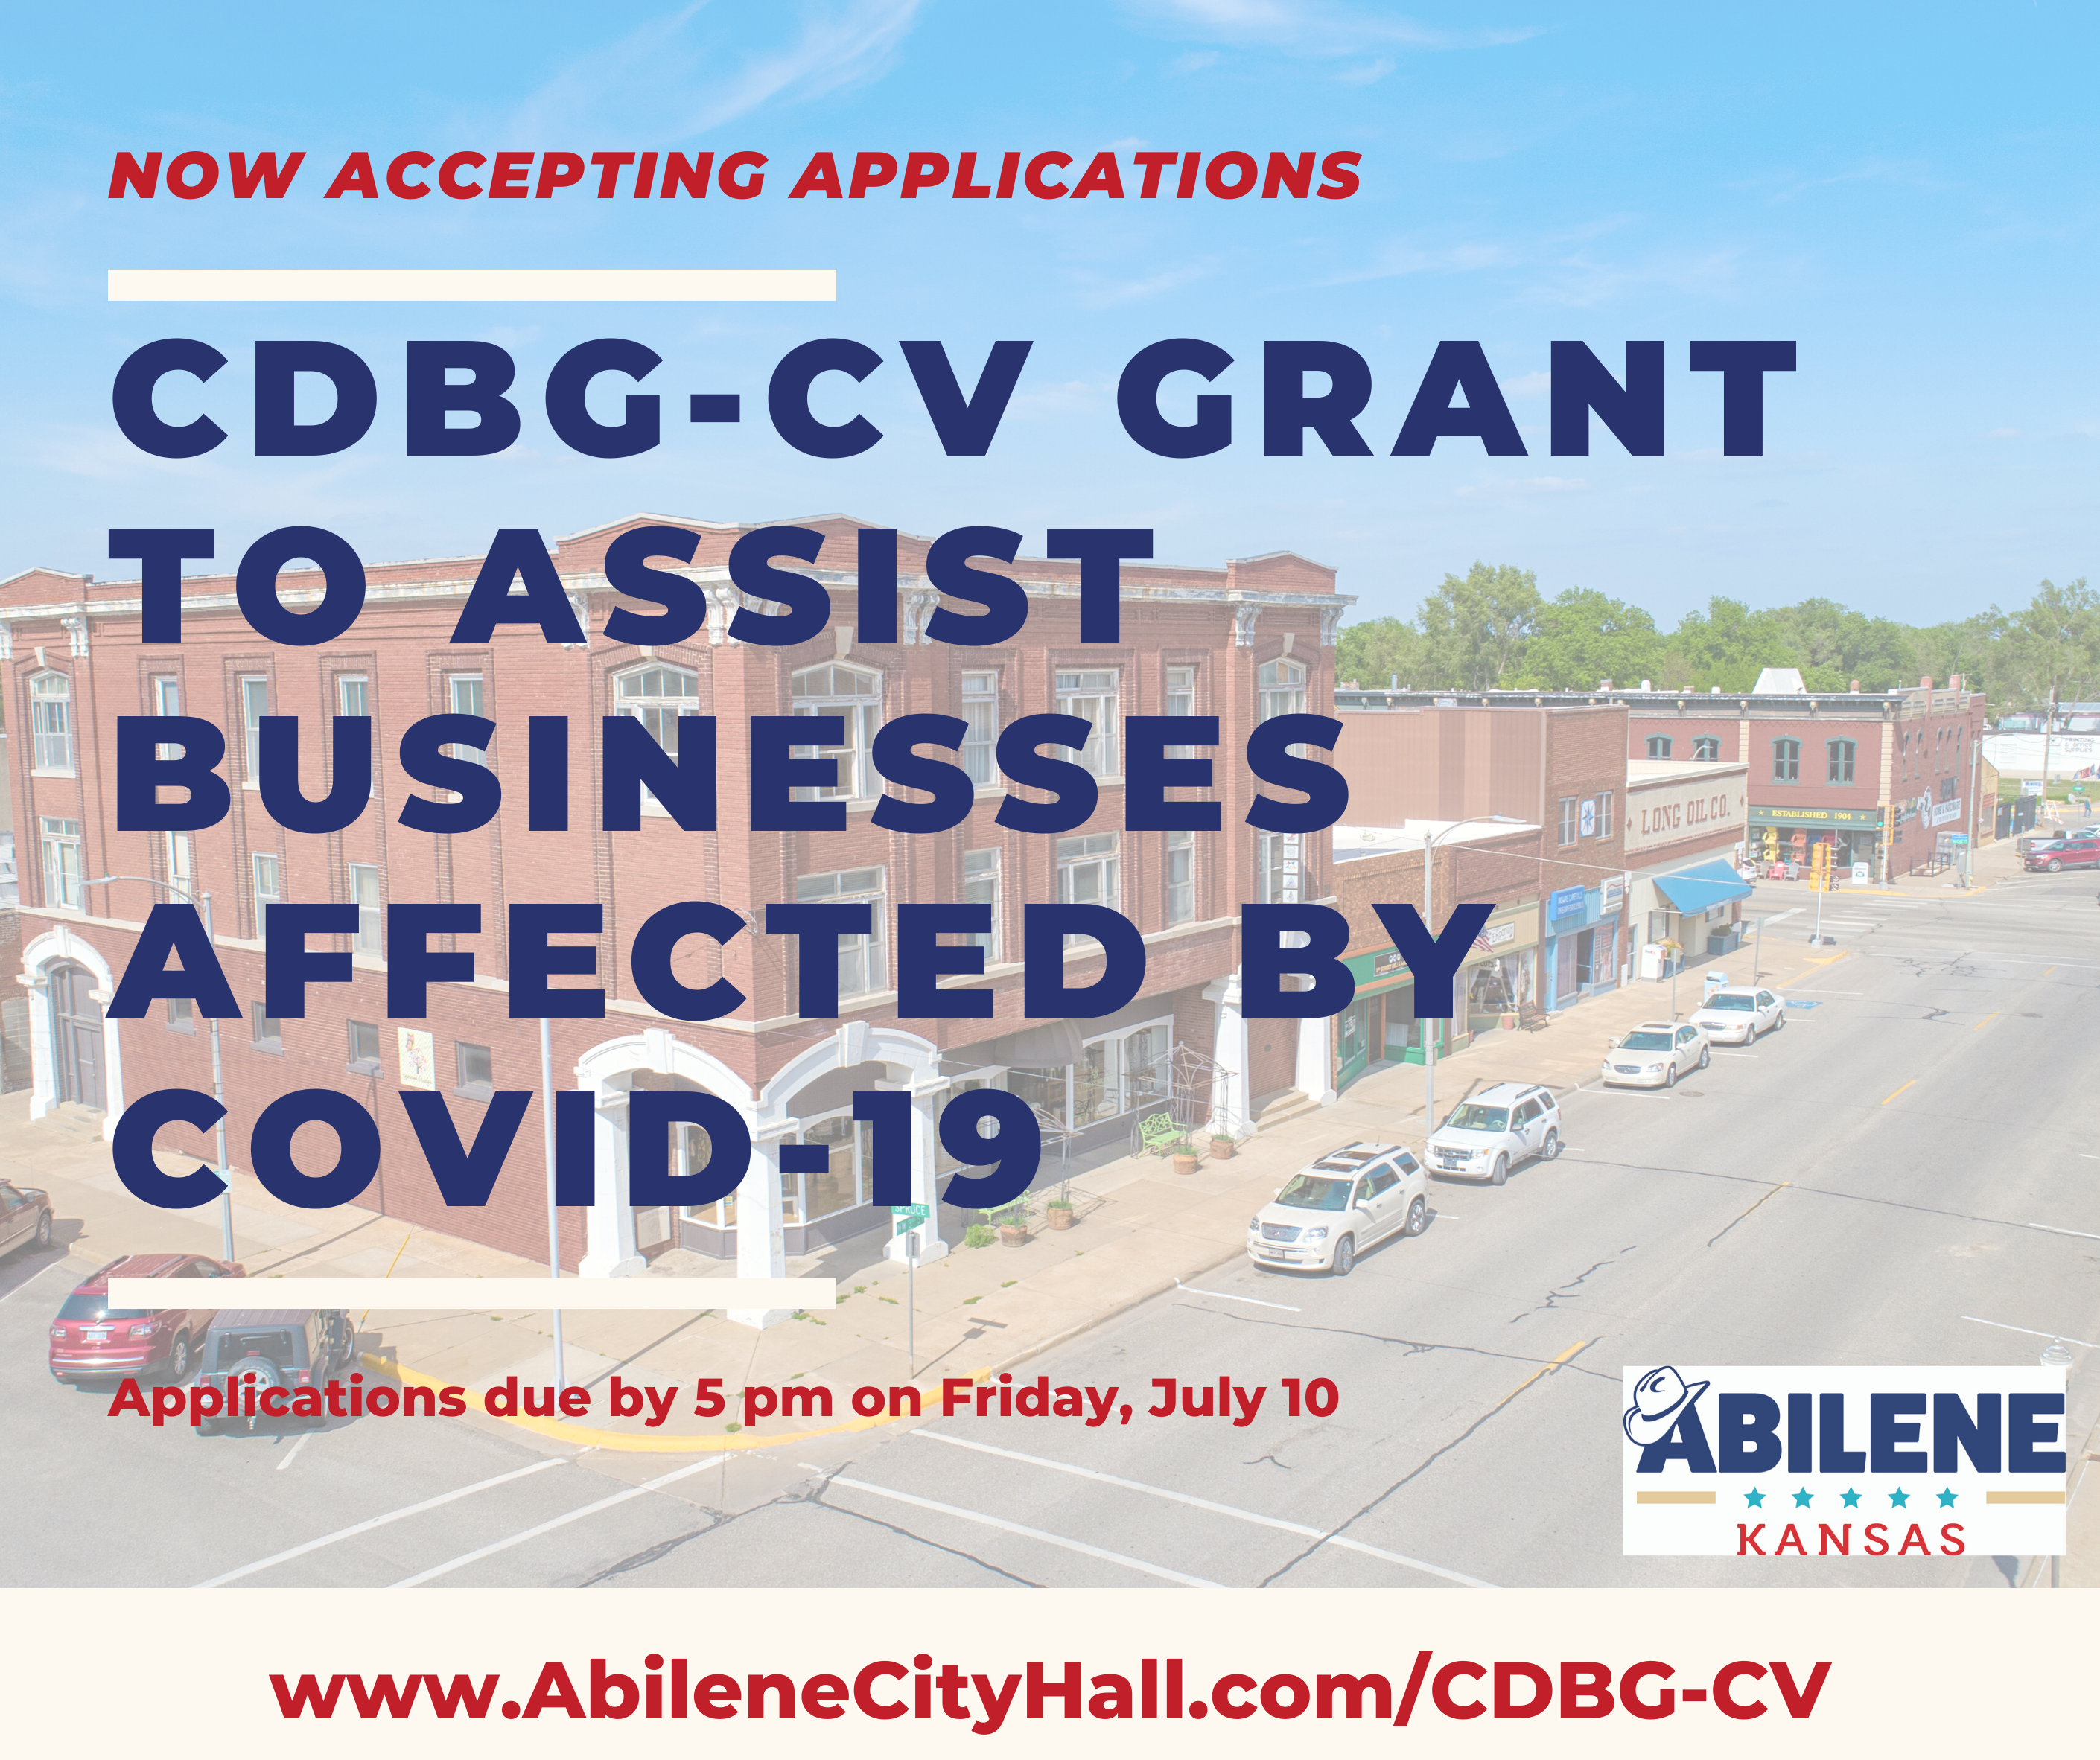 City of Abilene, Kansas - CDBG-CV